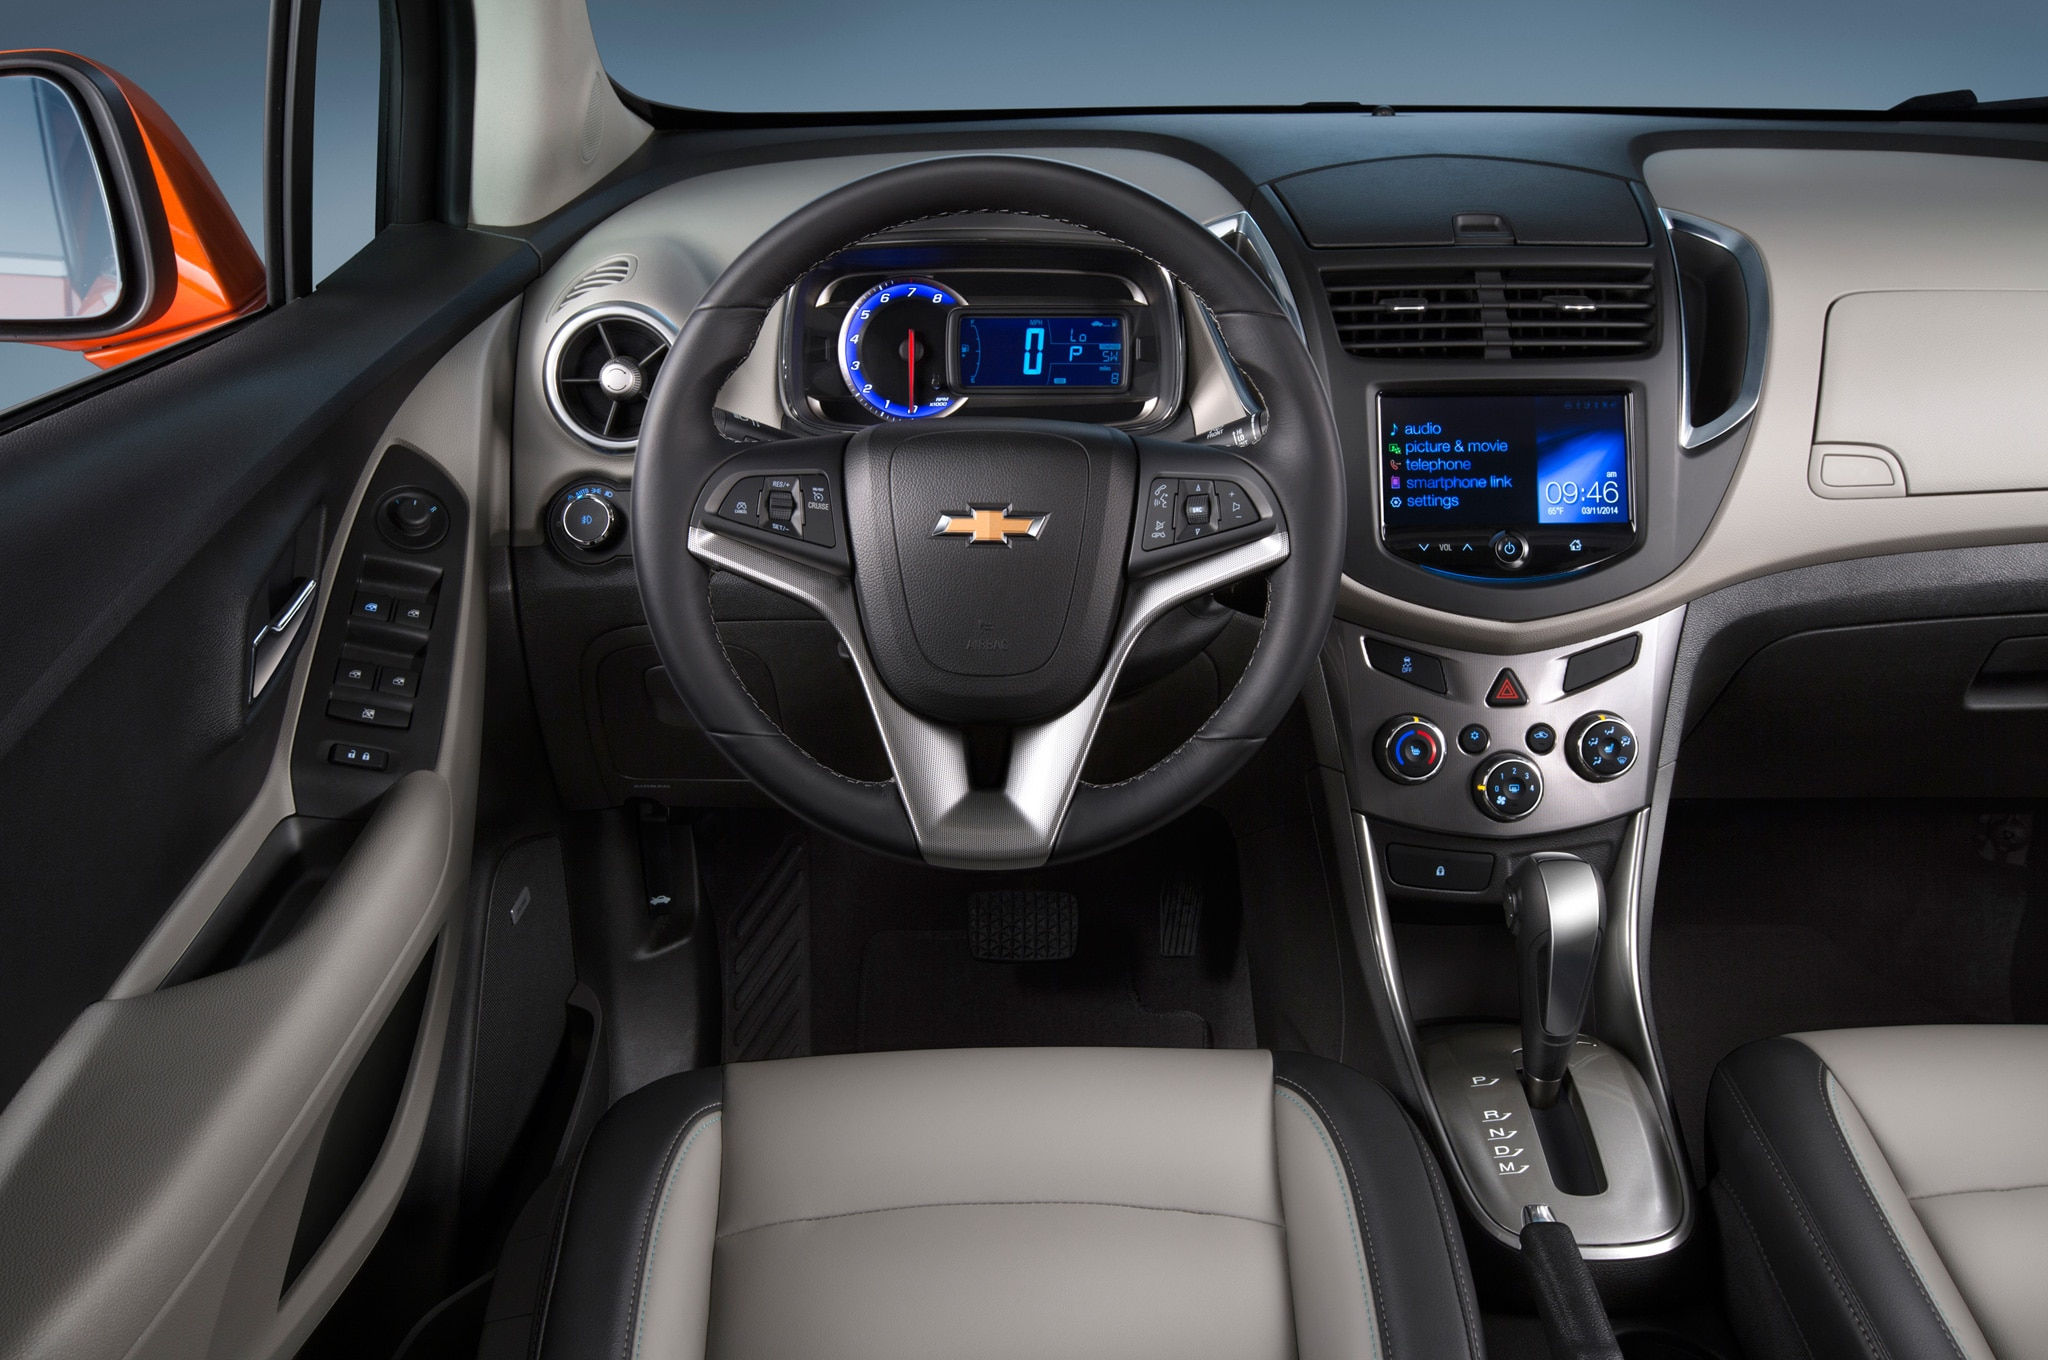 2015 chevrolet trax review show more sciox Image collections